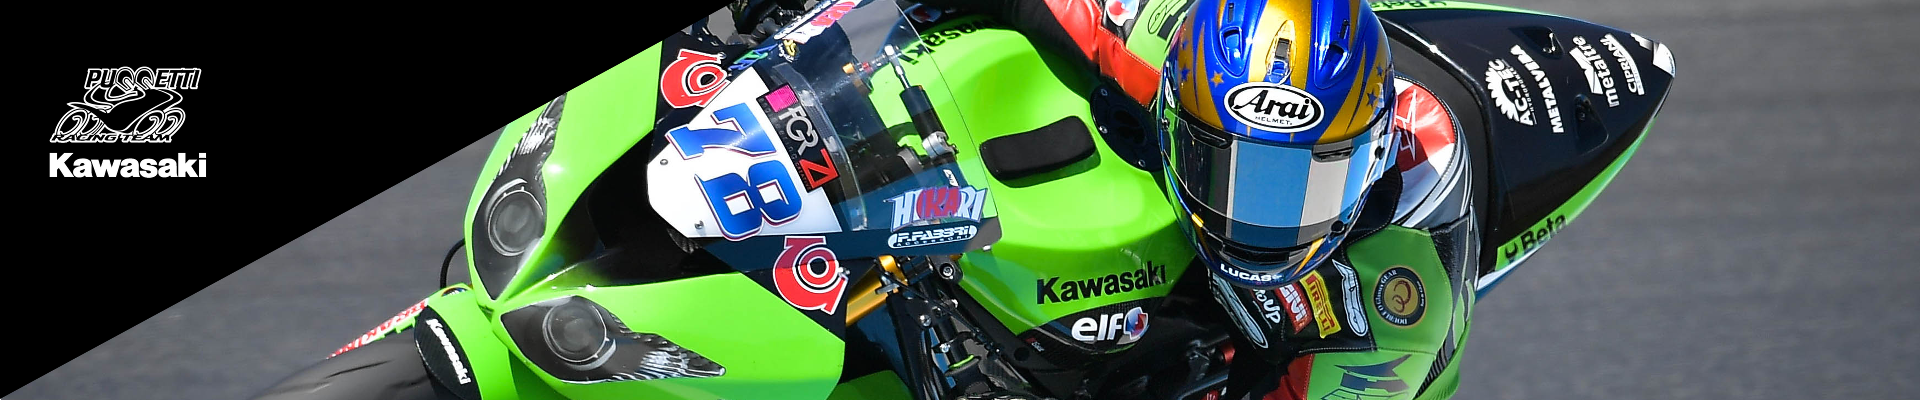 Kawasaki Puccetti Racing - Official Site